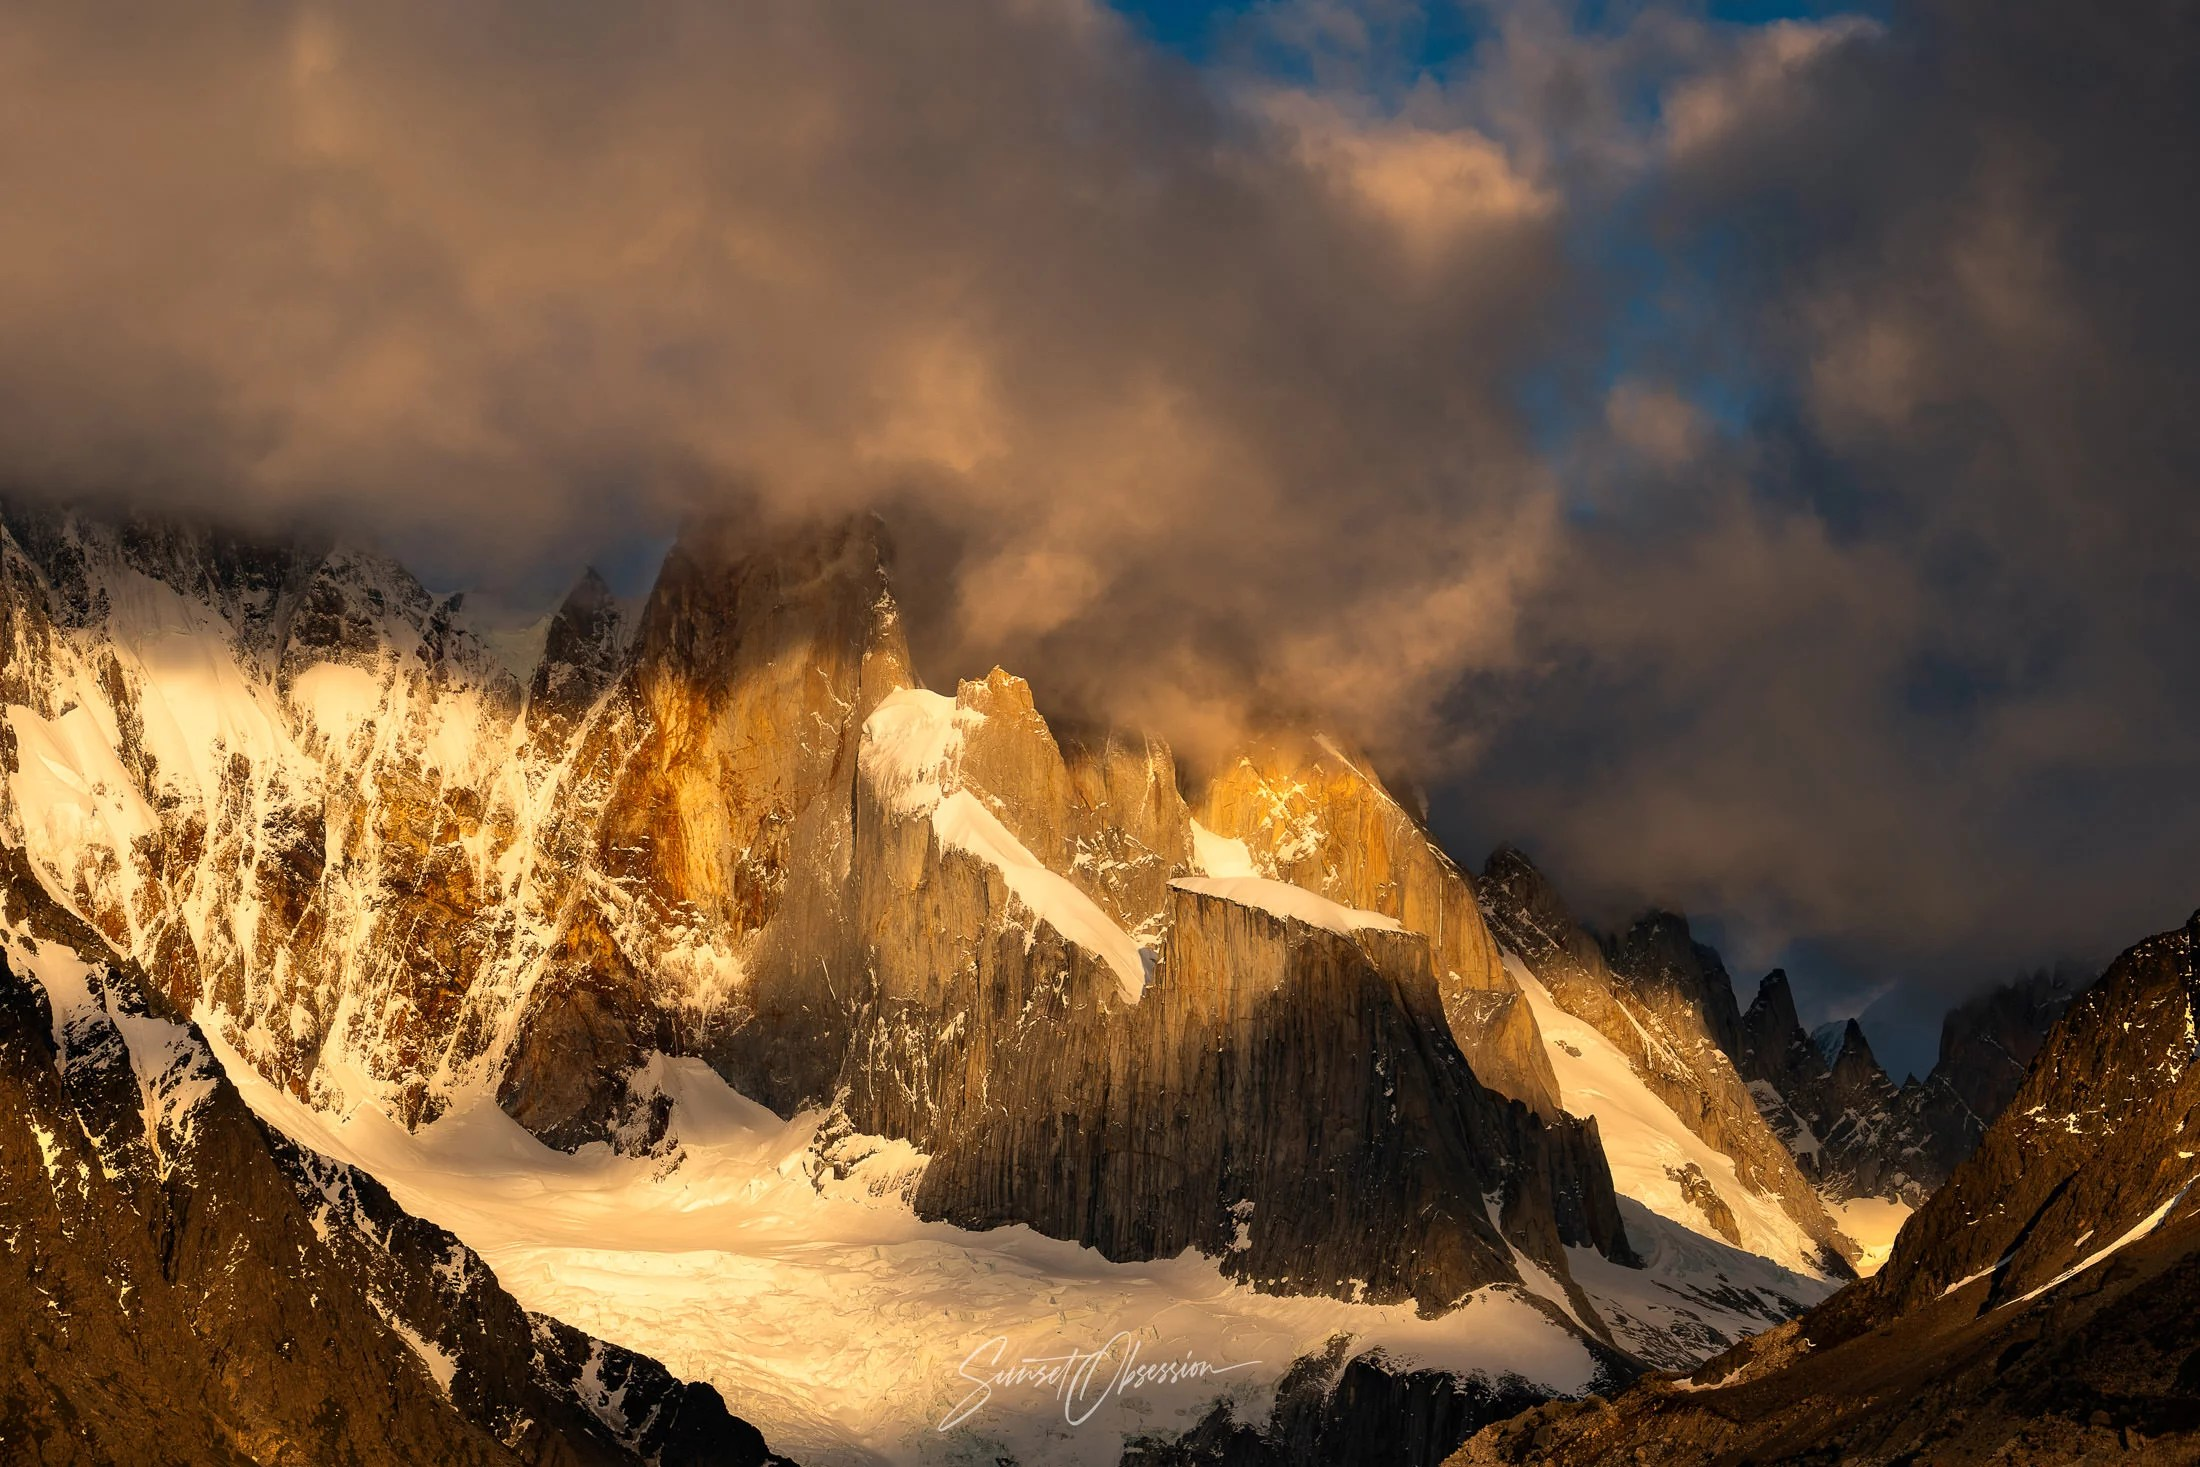 Mountains around El Chalten provide plenty of opportunities for landscape photography